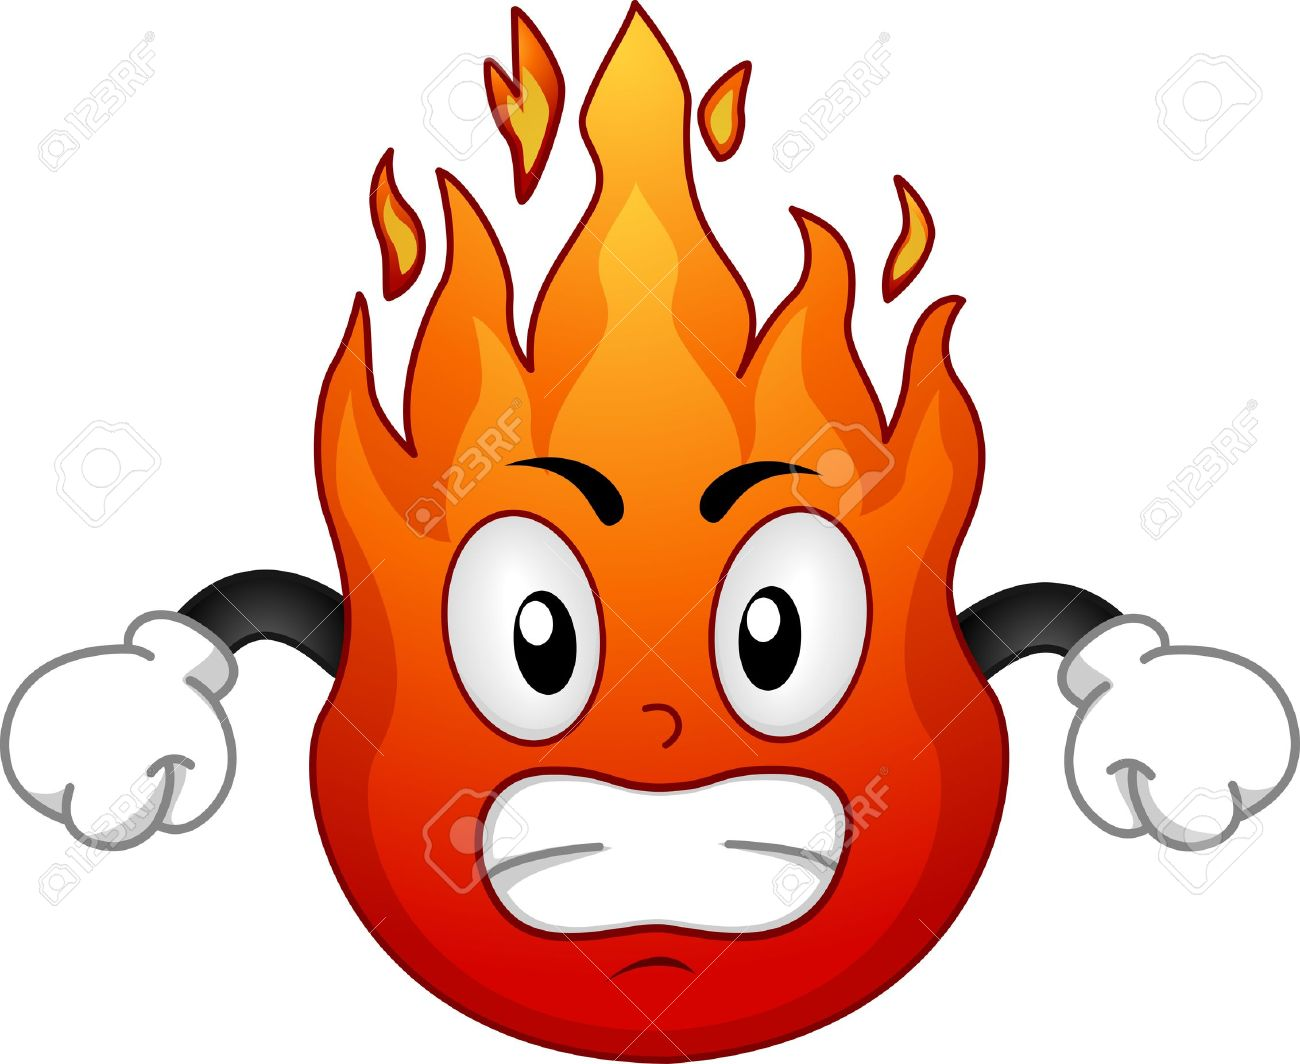 16480 Fire free clipart.